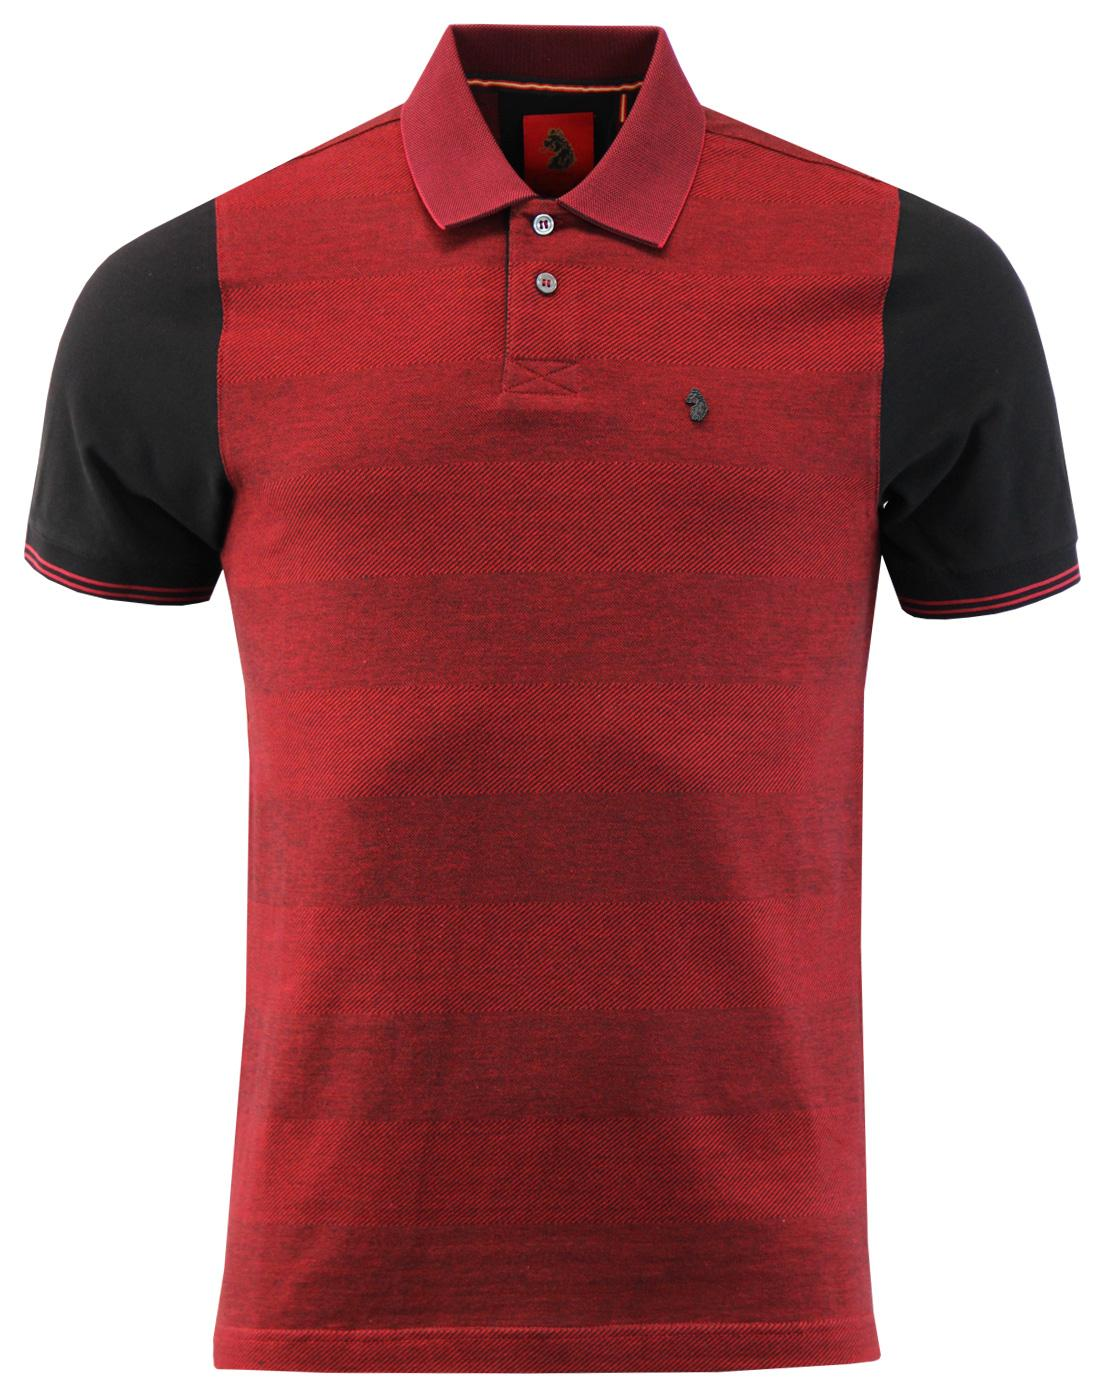 Tony Tonal LUKE 1977 Retro Mod Texture Stripe Polo